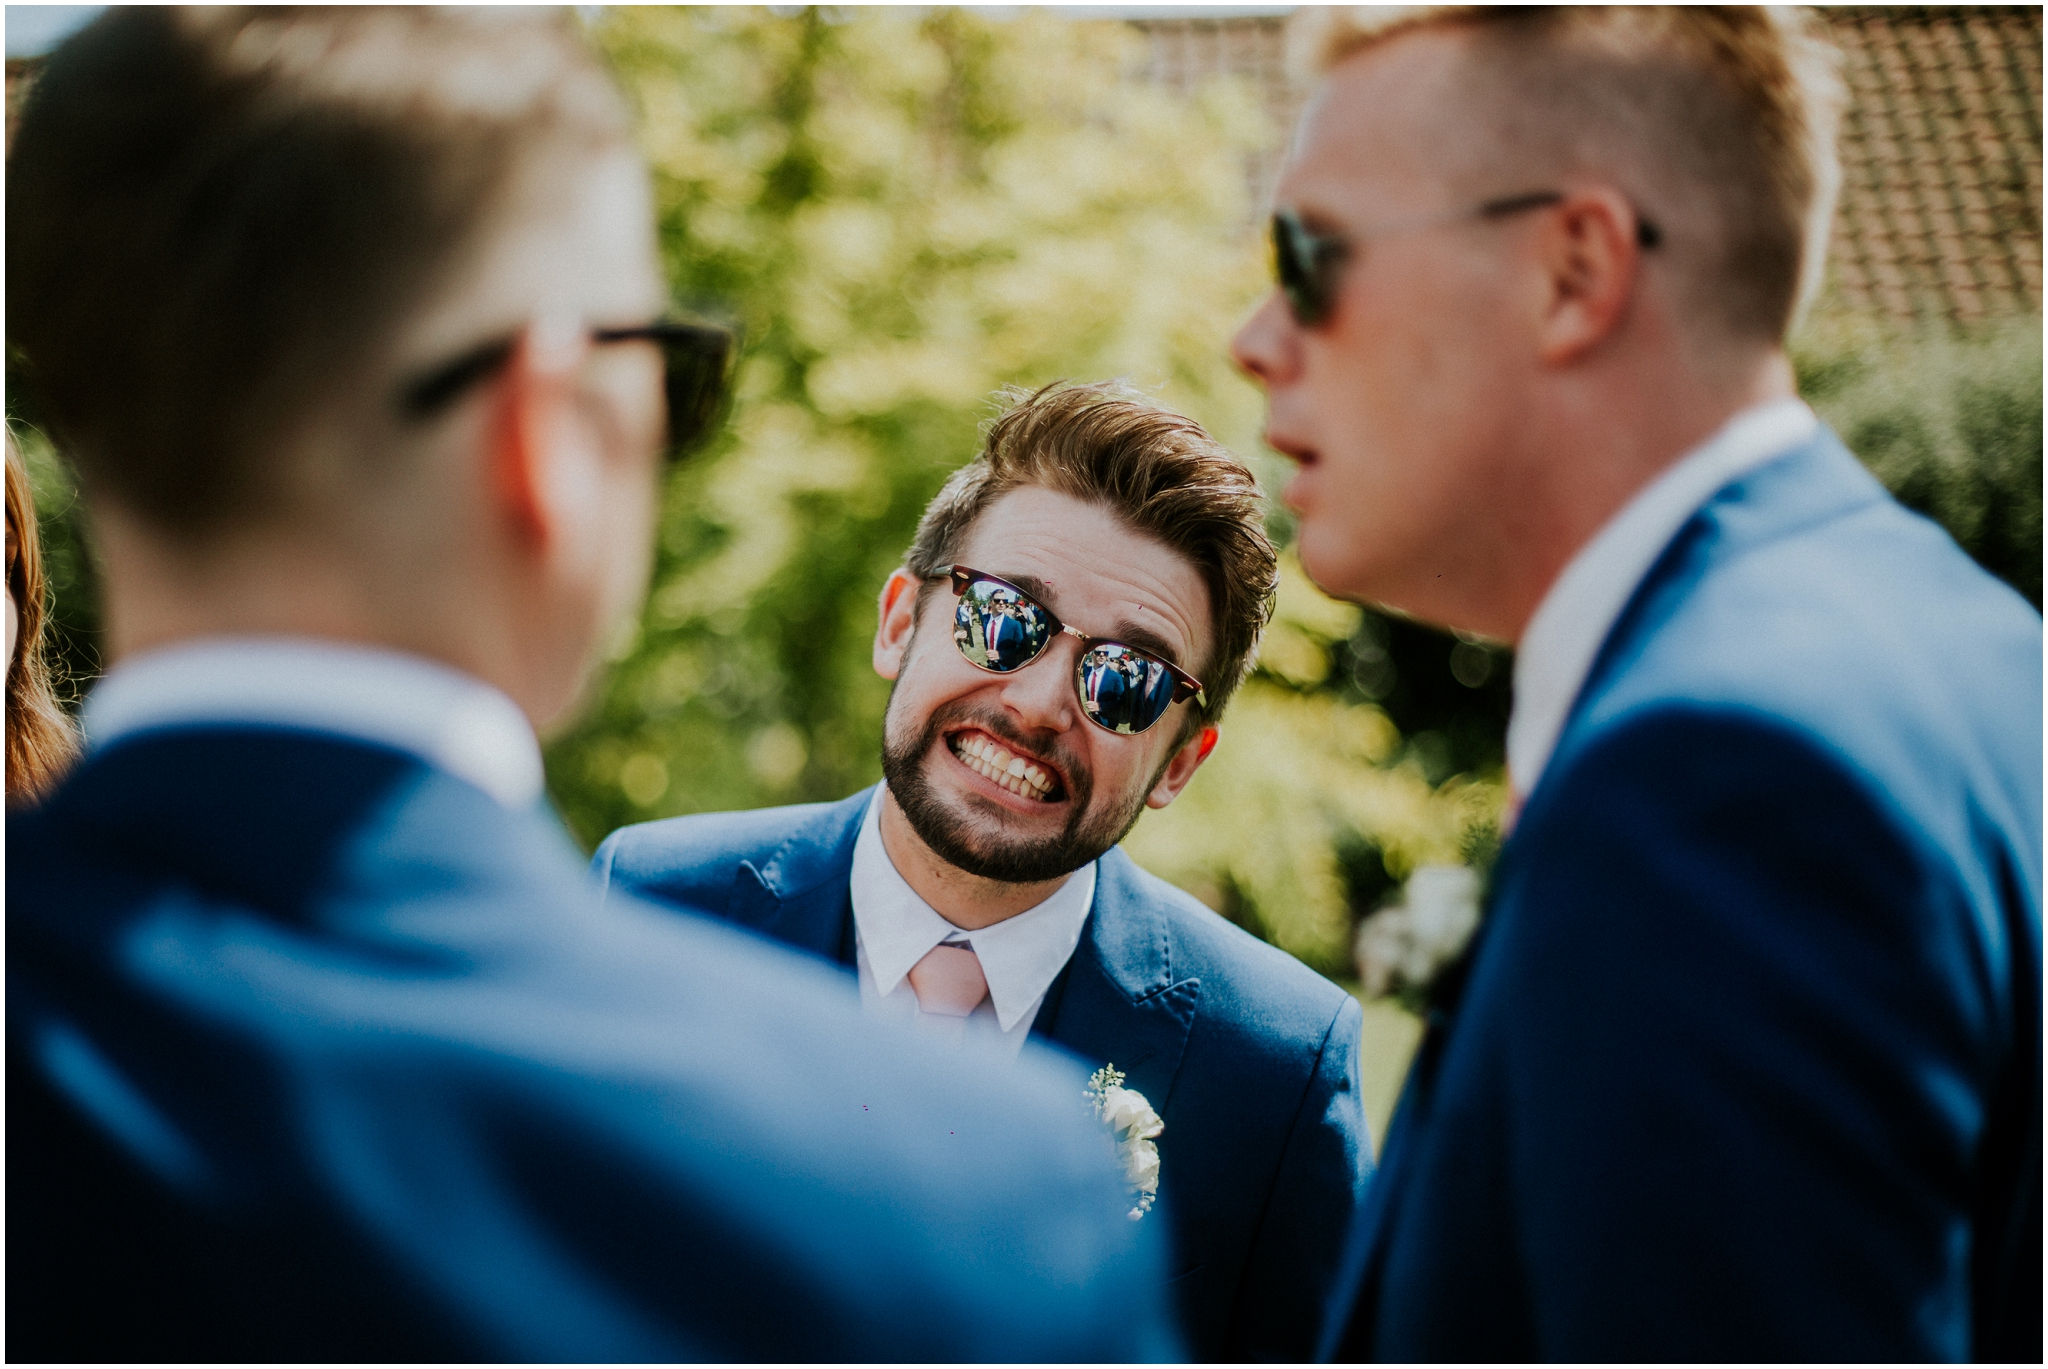 groomsman grinning wearing sunglasses